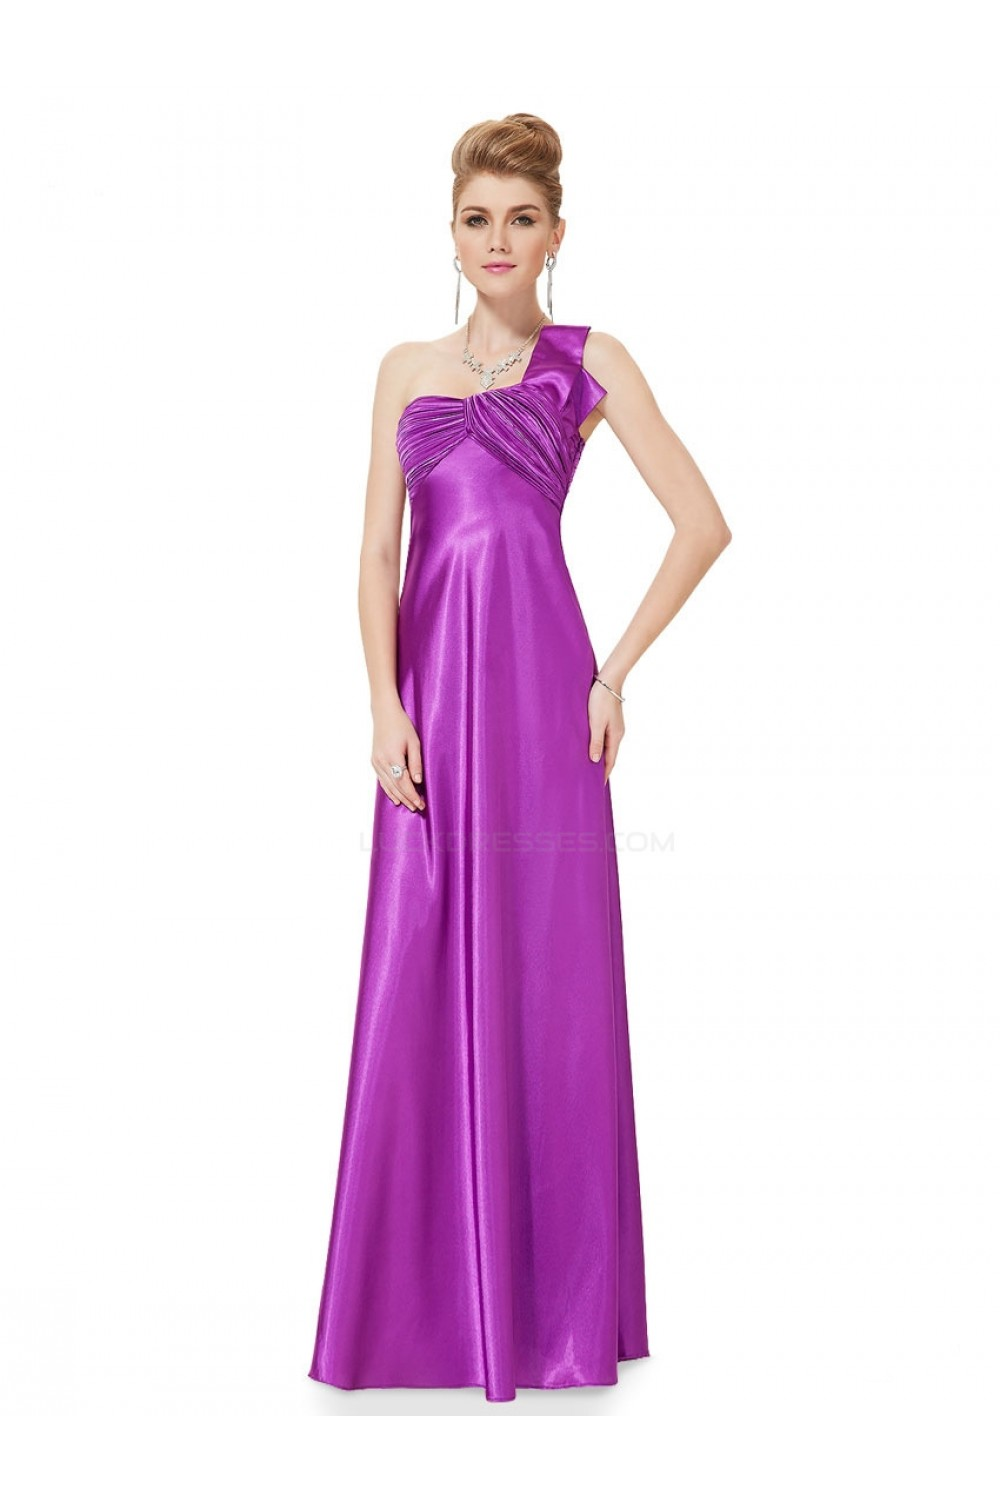 empire oneshoulder purple long chiffon bridesmaid dresses